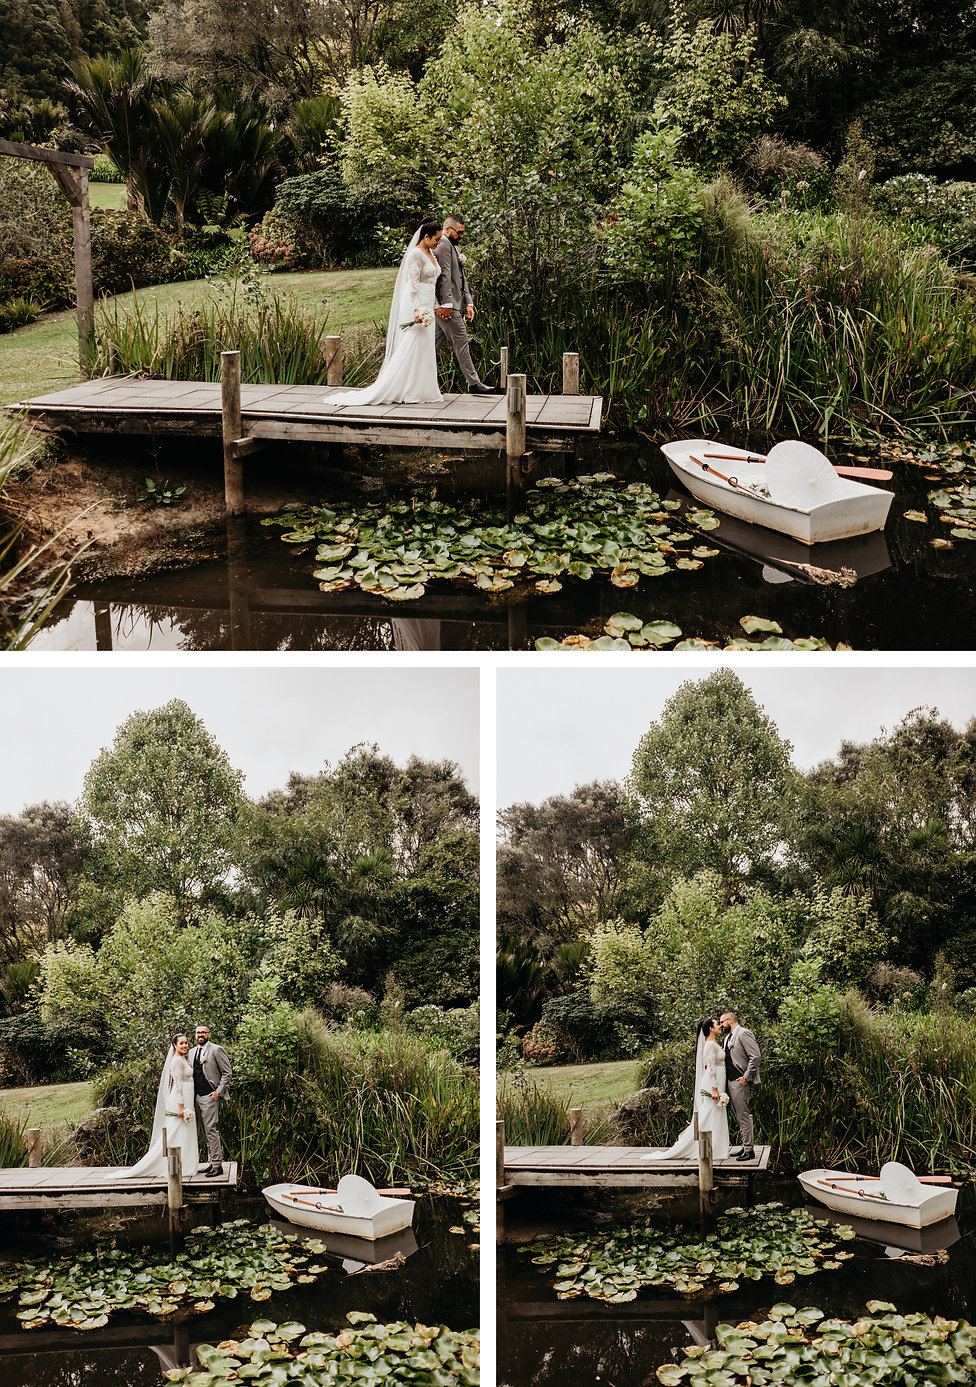 bridal photos at bridgewater estate in Auckland New Zealand, captured by wanderlusting lovers